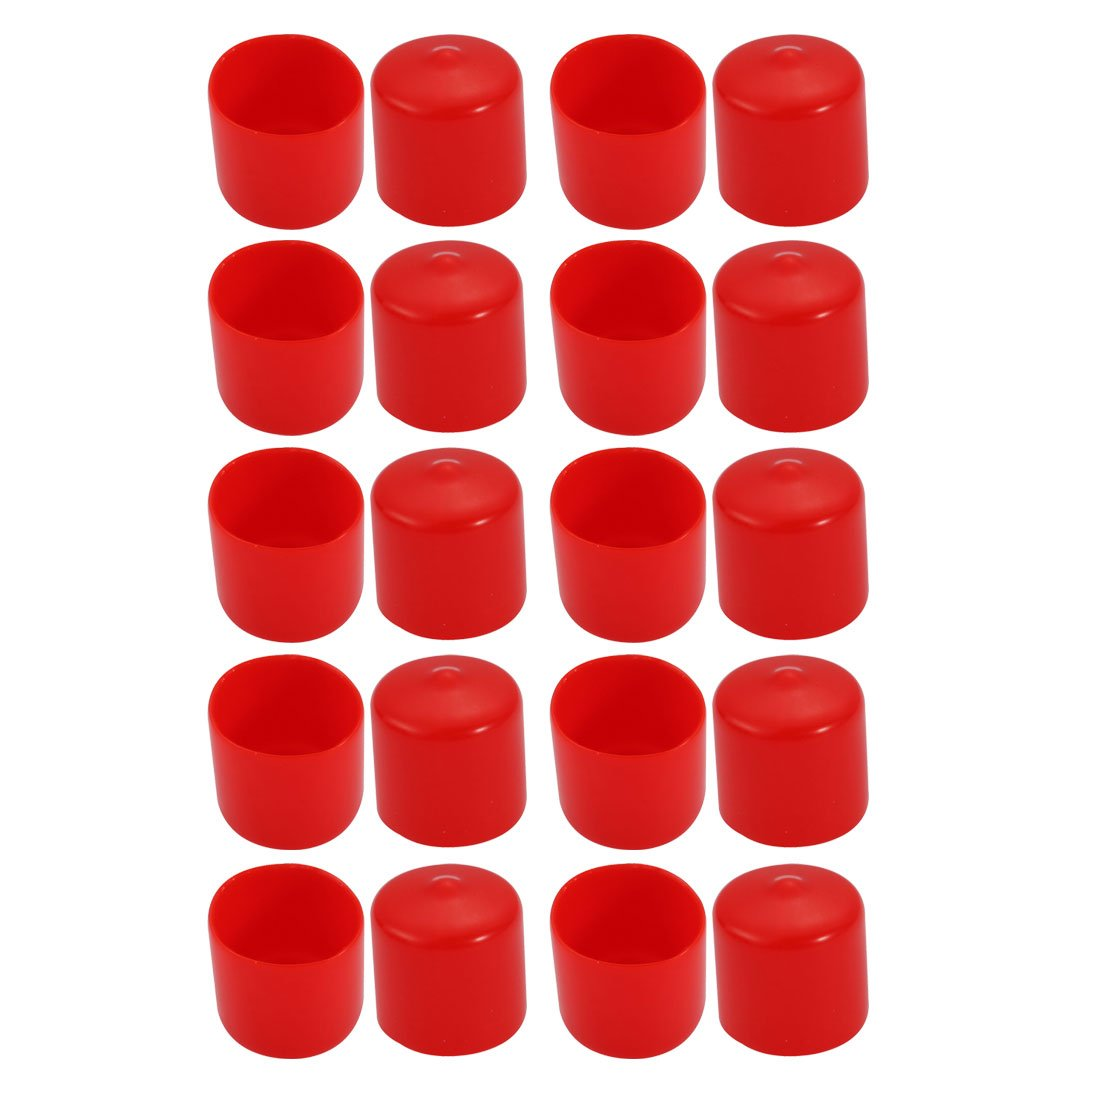 uxcell 20Pcs 23mm Inner Dia PVC Flexible Vinyl End Cap Screw Thread Protector Cover Red